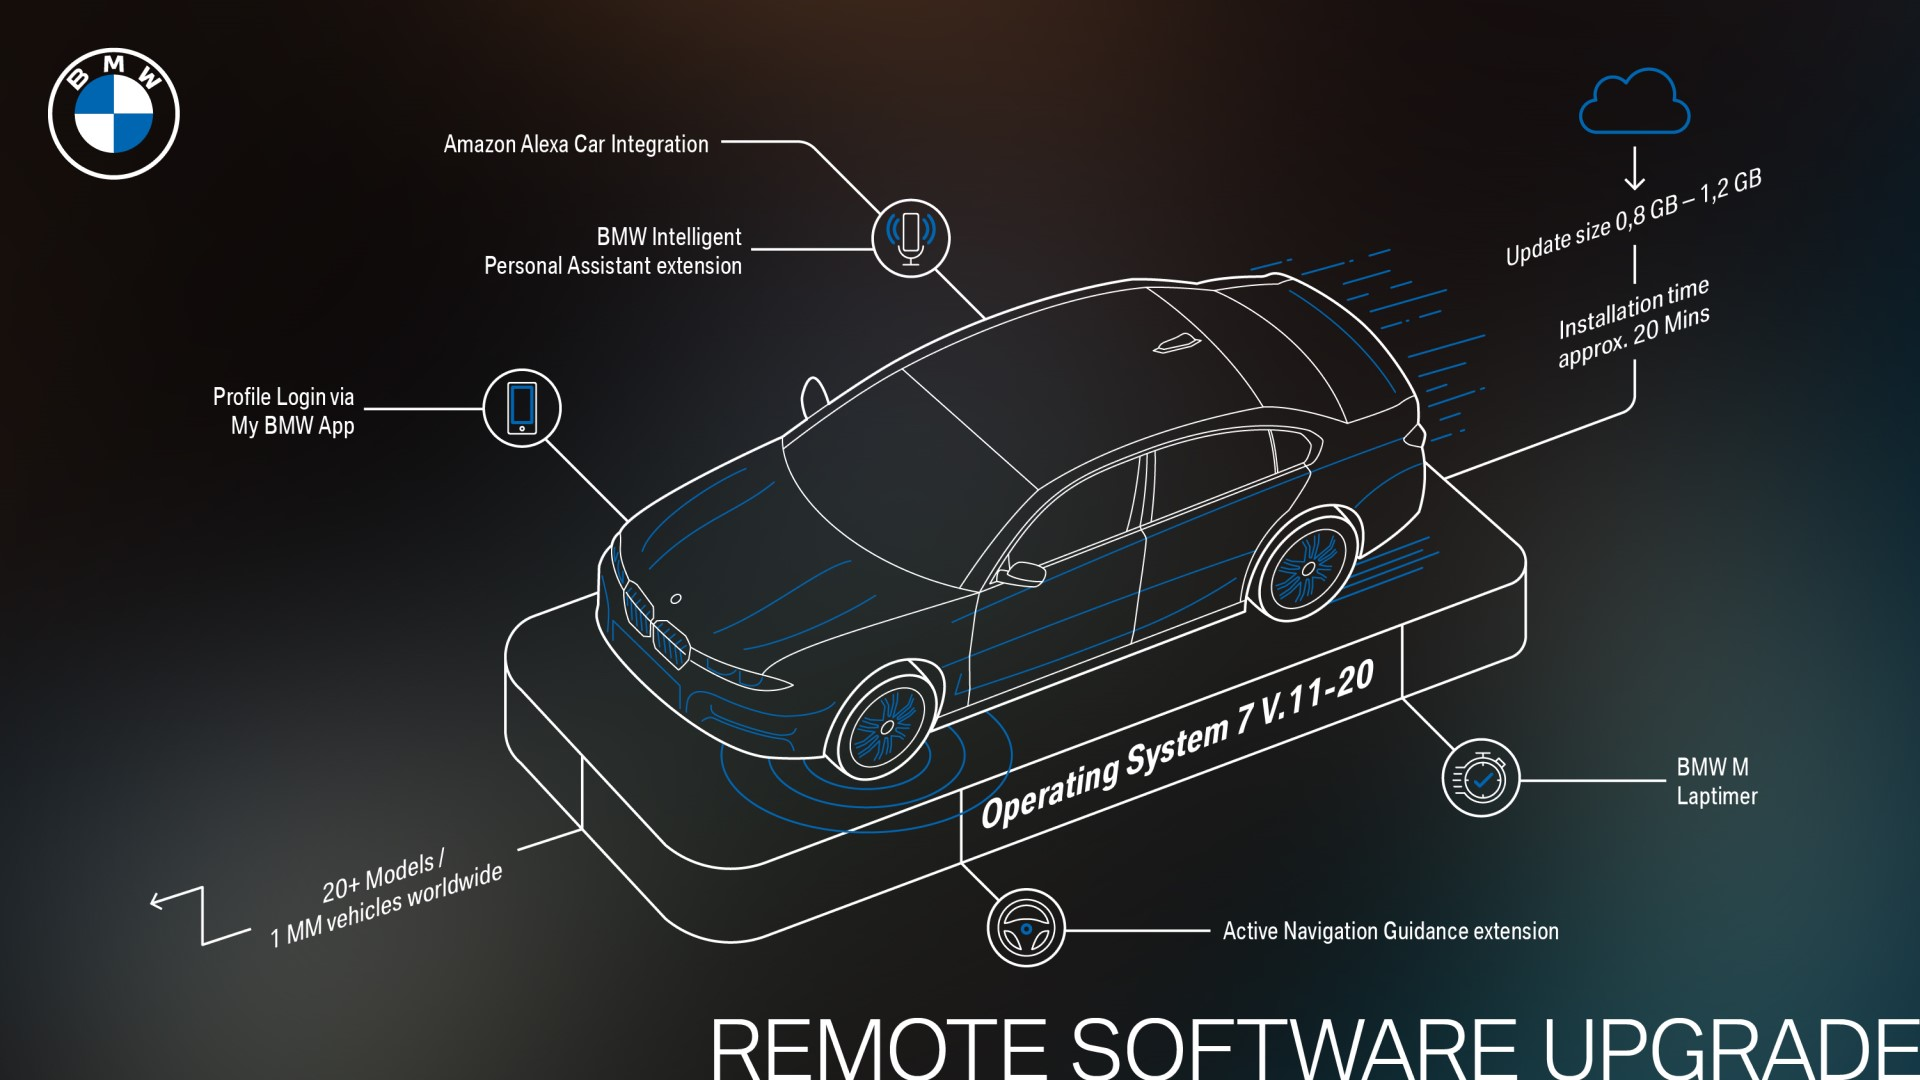 BMW Remote Software Upgrade February 2021